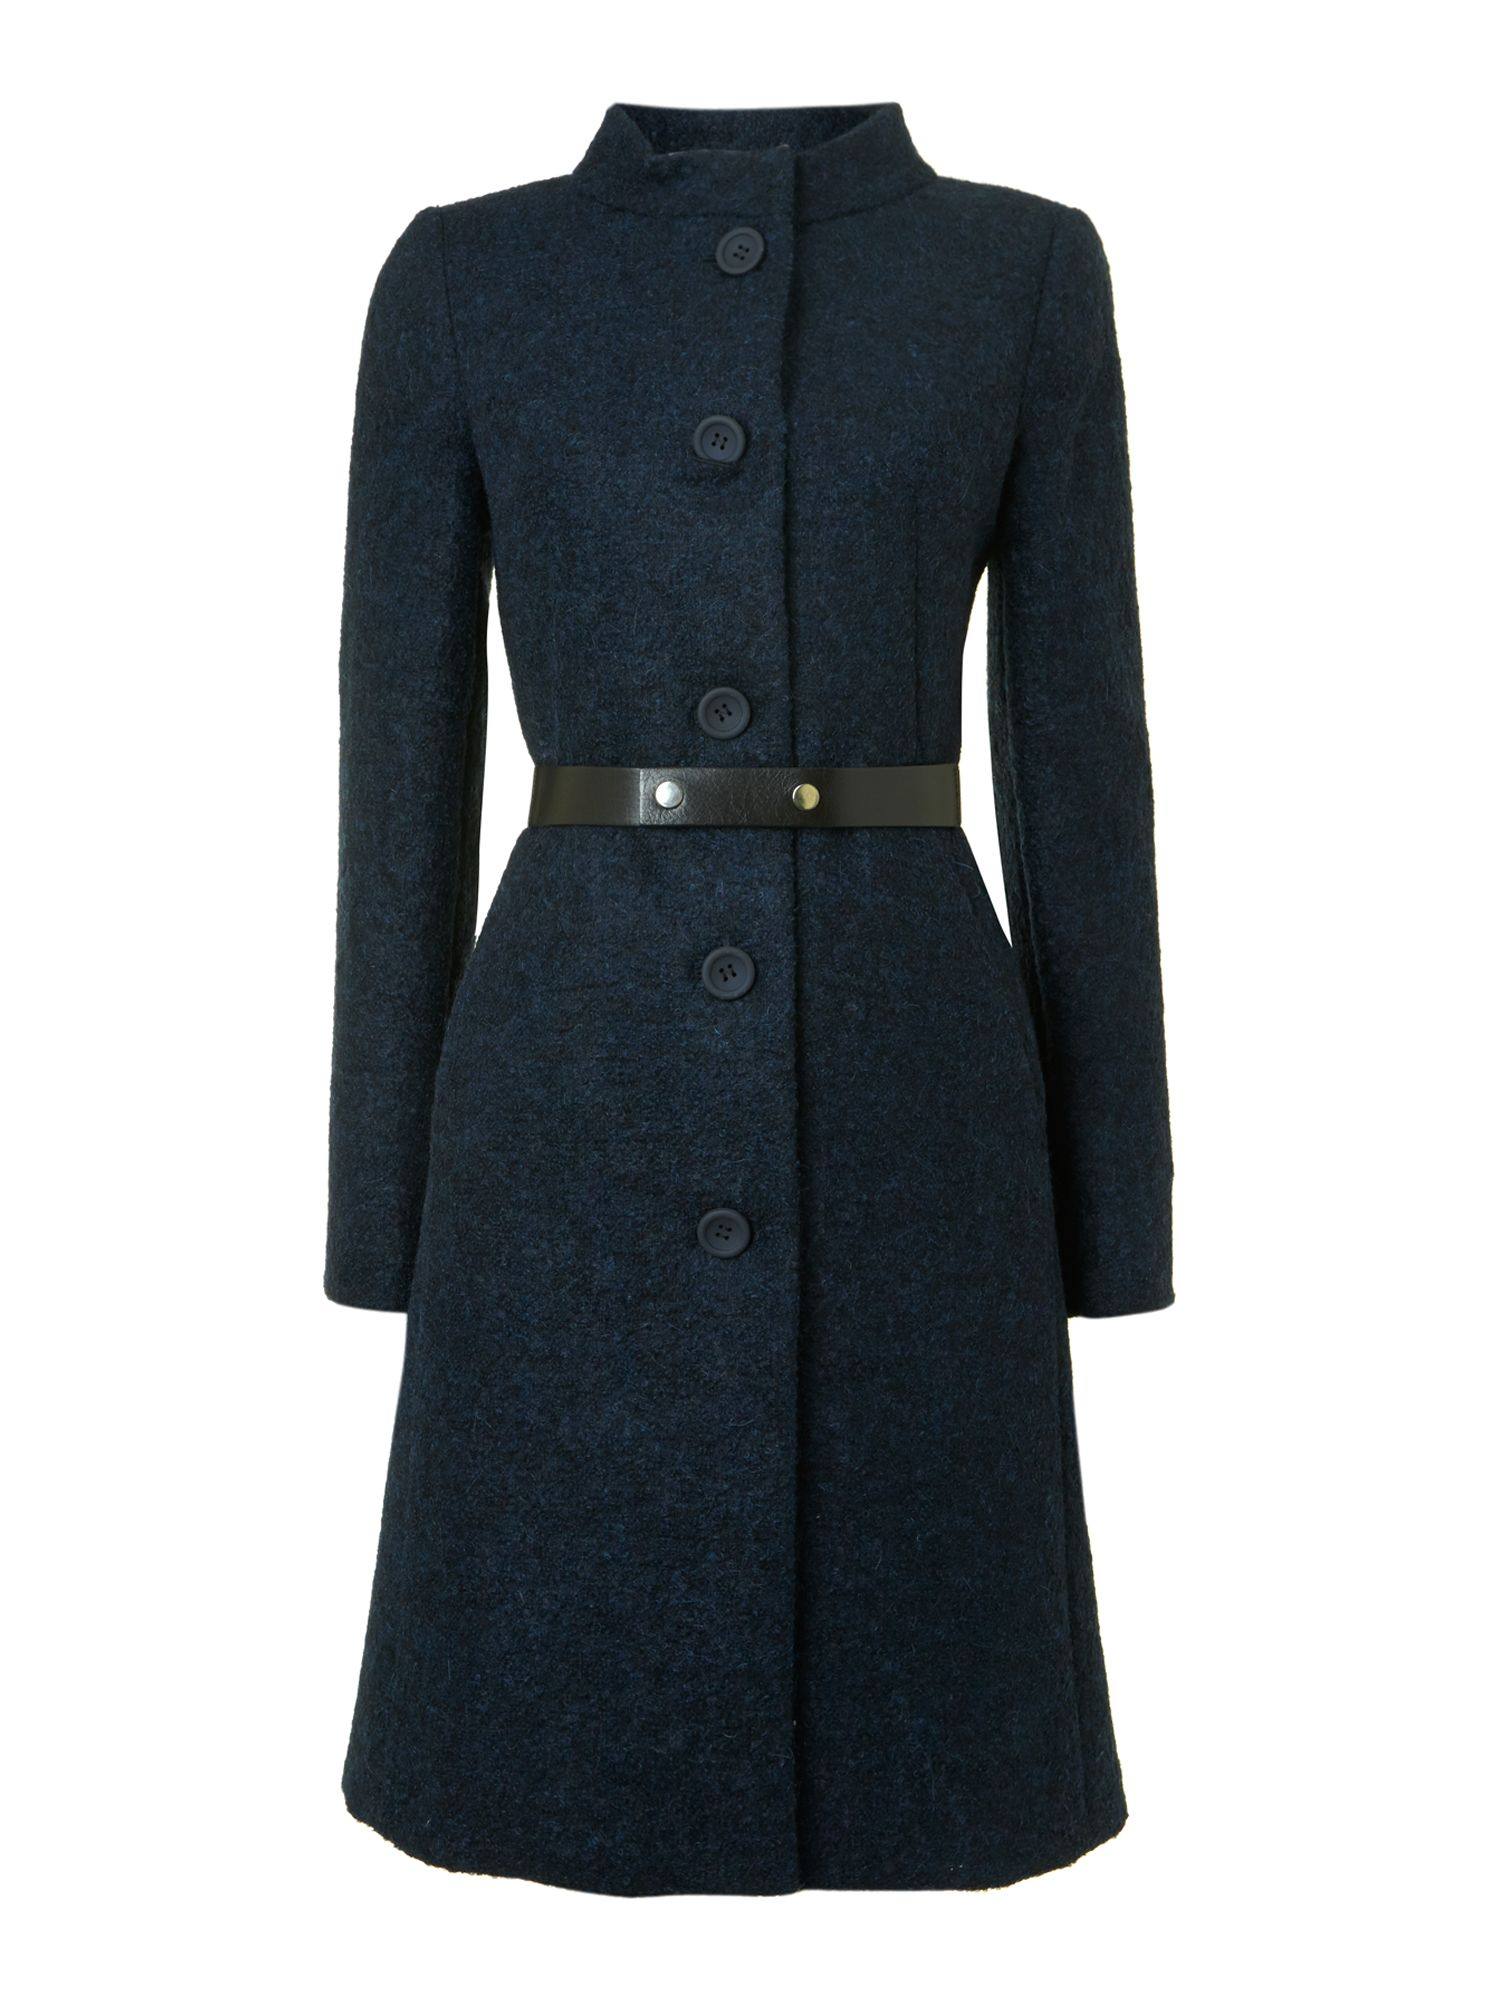 Dedalo button front coat